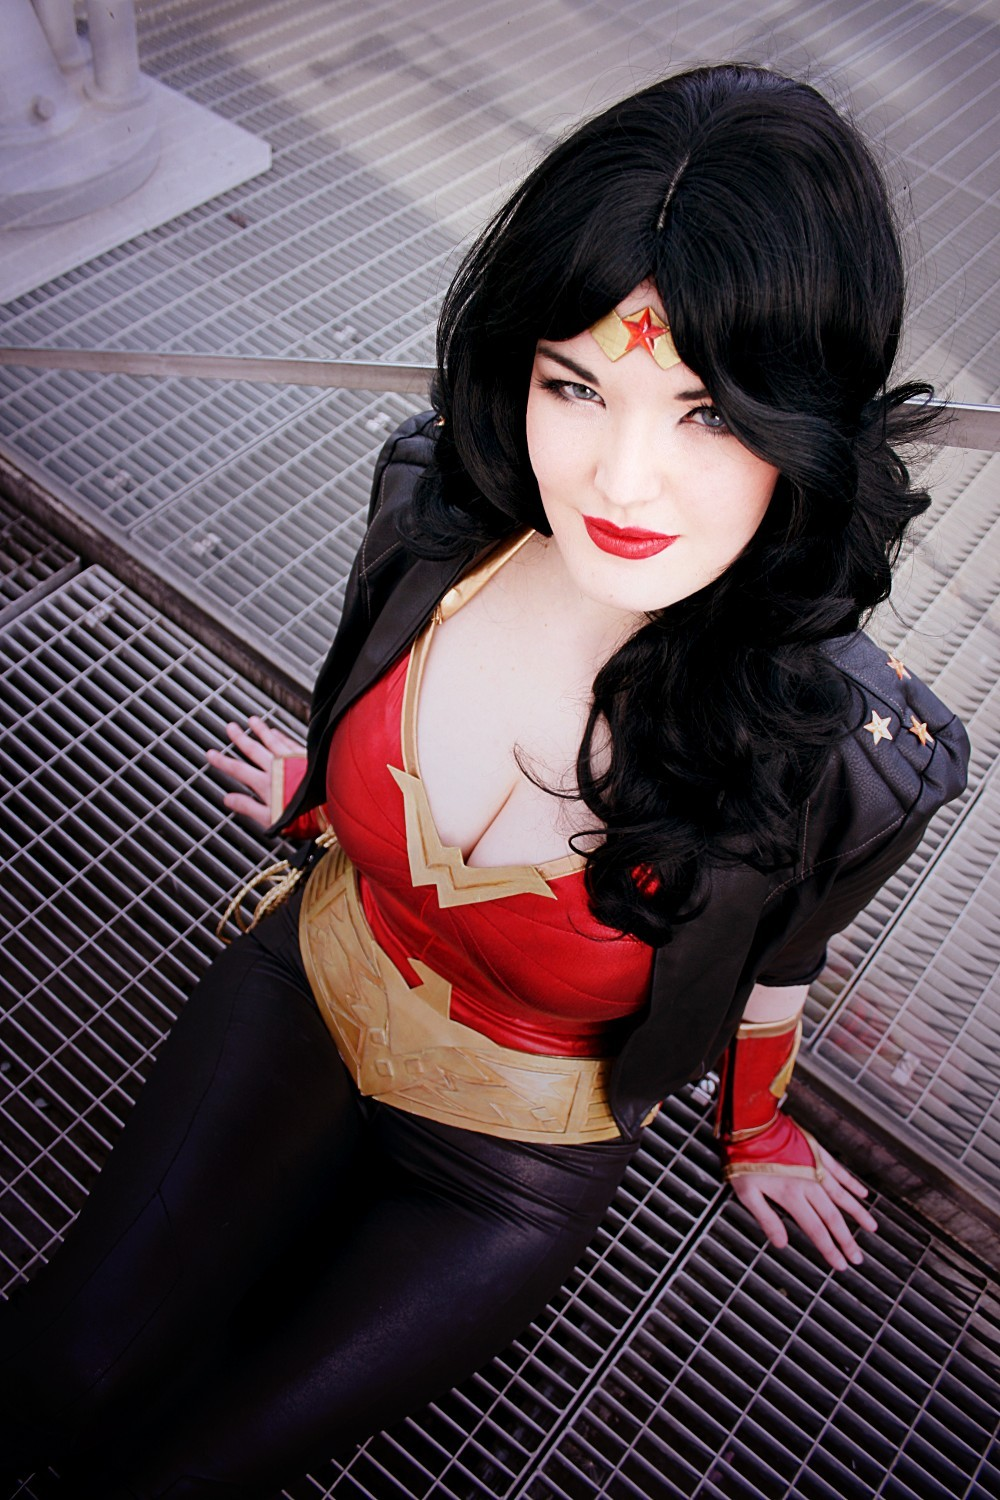 Y-o-s-s-i is Wonder Woman — Photo by Aco Photo